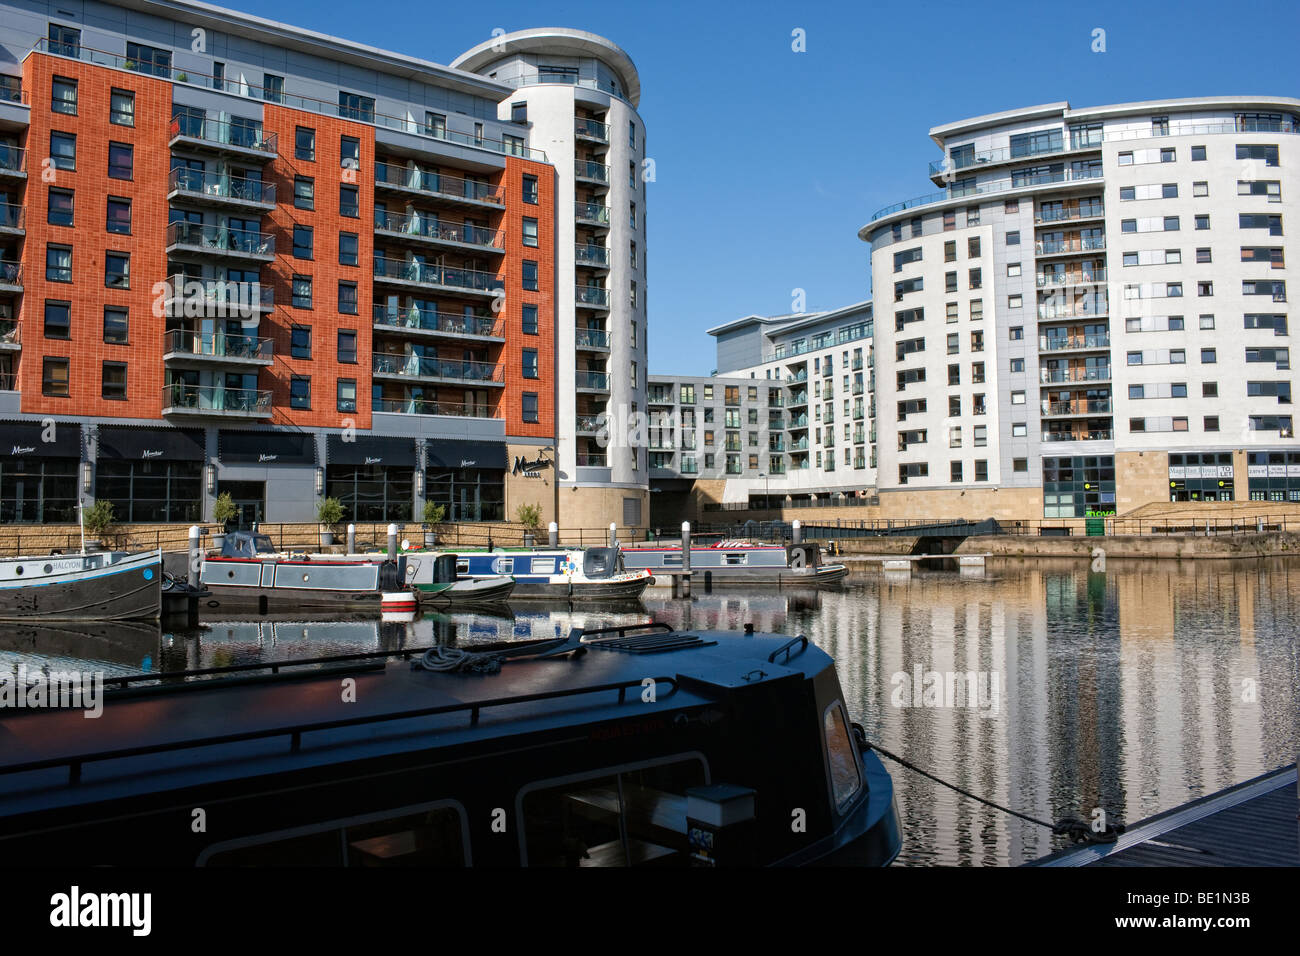 Clarence Dock in Leeds City Centre - Stock Image